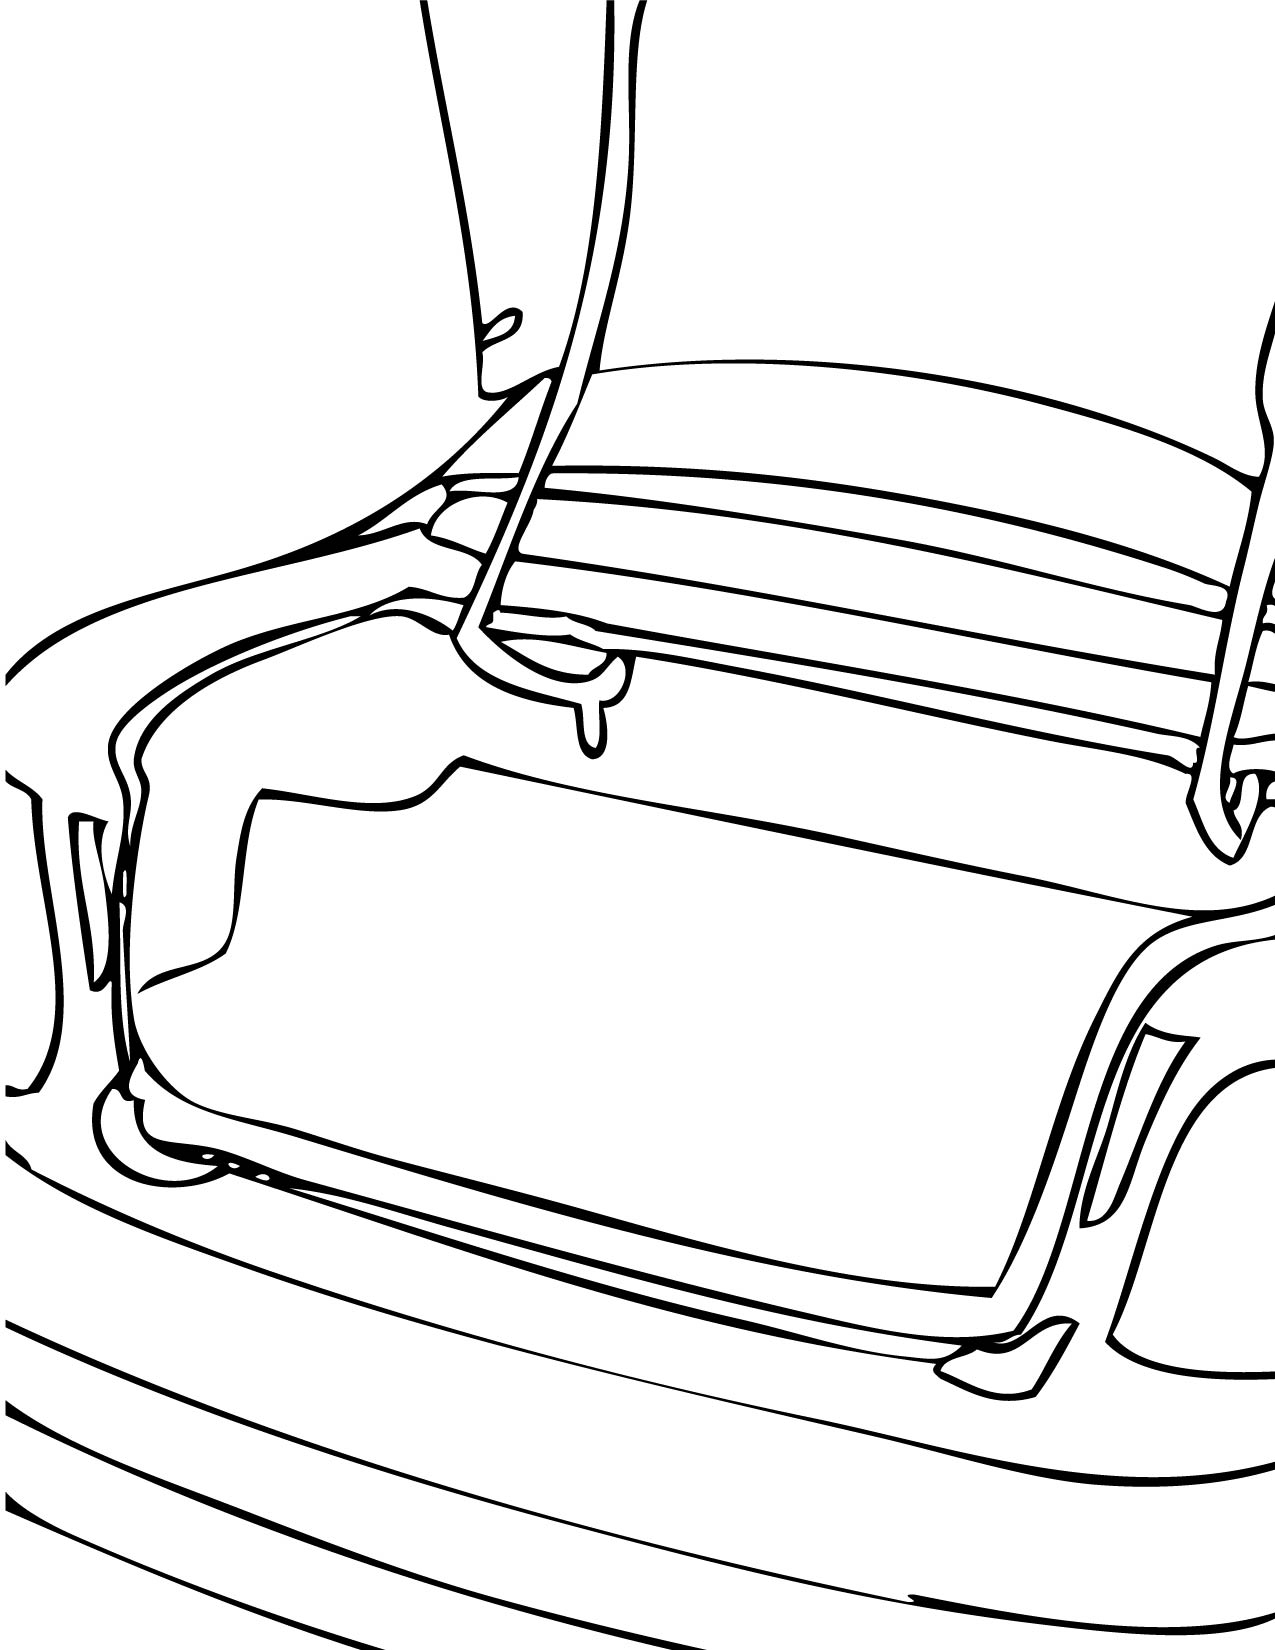 free coloring pages of bare tree trunks